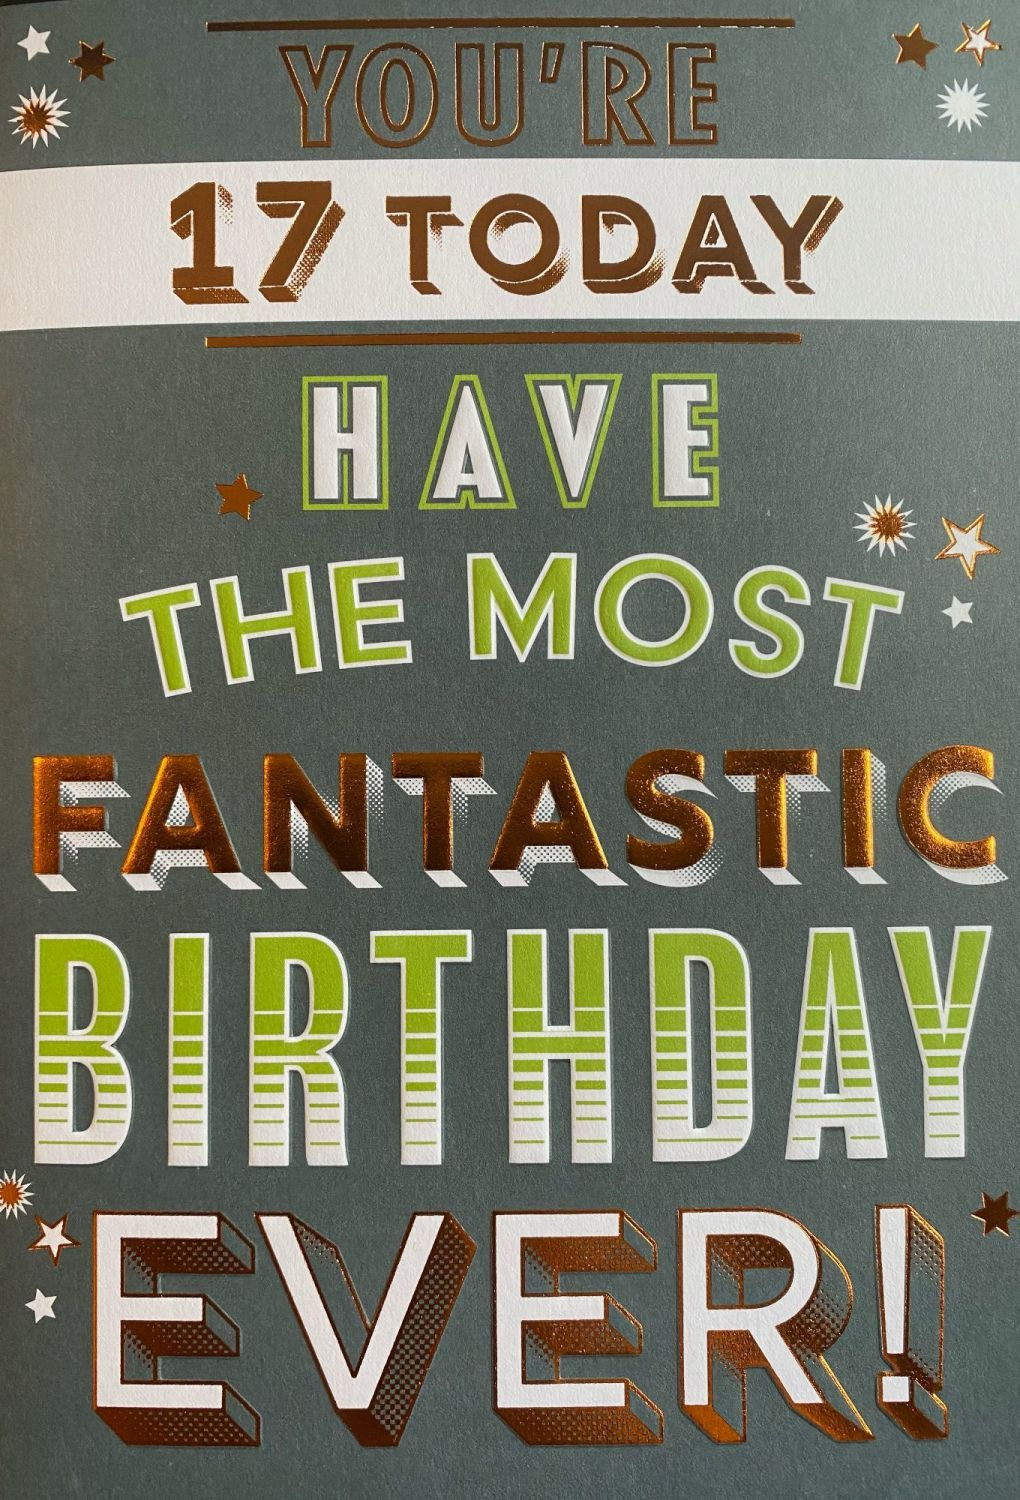 You're 17 Today Have The Most Fantastic Birthday Ever!